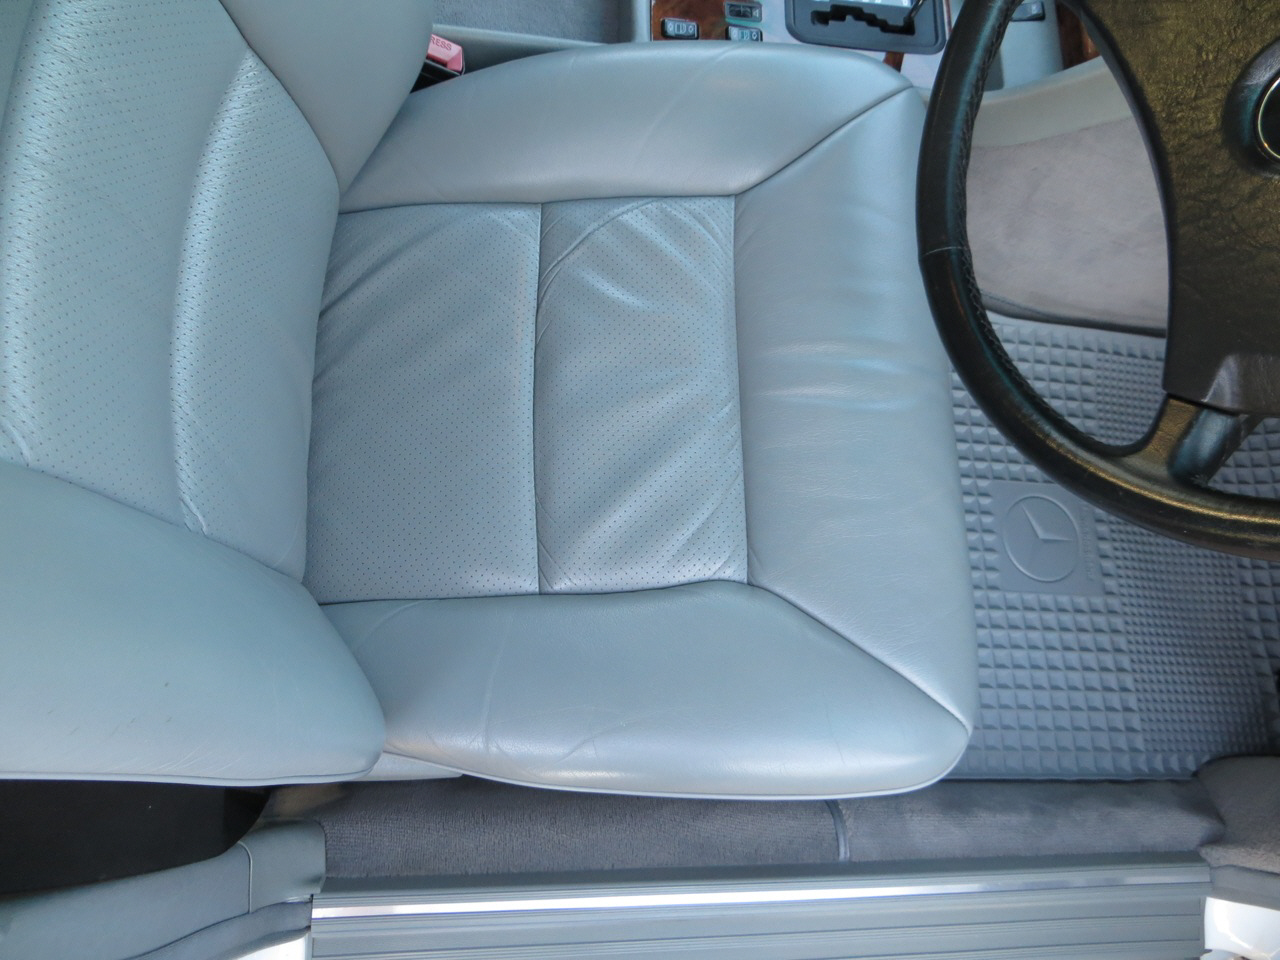 Rubber mats edenvale - The Car Has Never Been Smoked In And Still Smells Like A New Mercedes Interior Original Rubber Floor Mats Still Sparkle